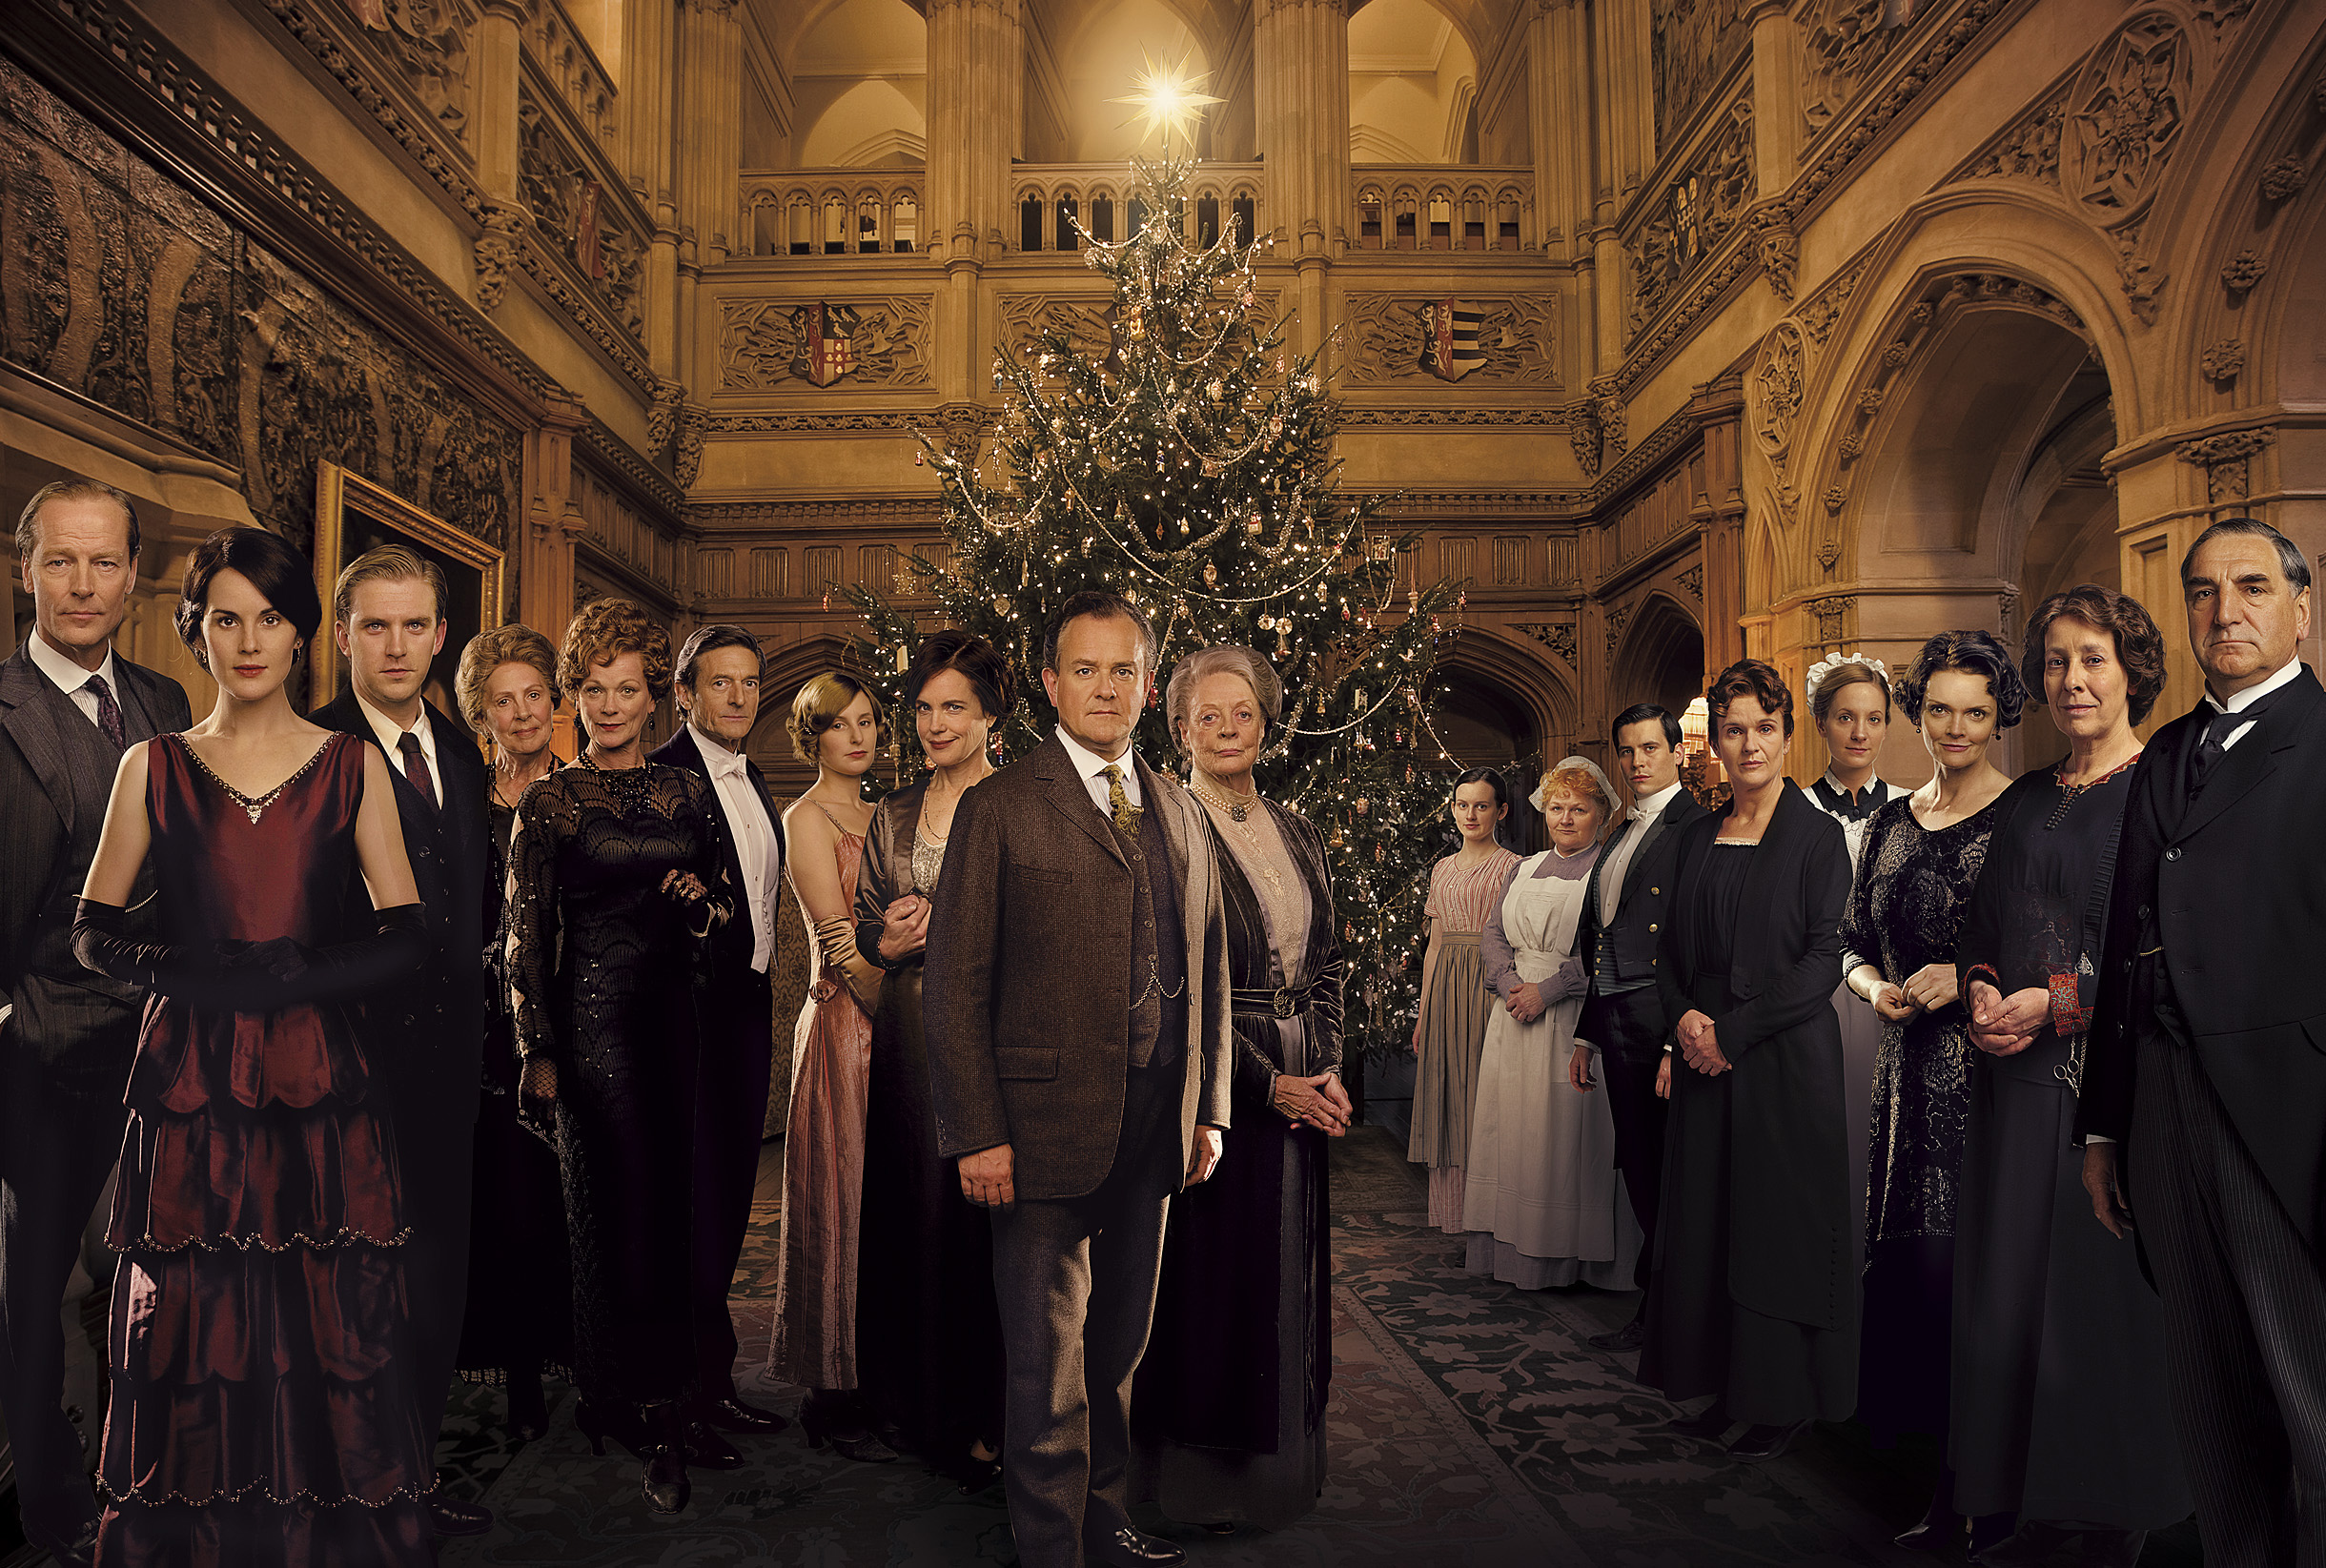 [Série] Downton Abbey (2010-2015) Downton-abbey-wallpaper-